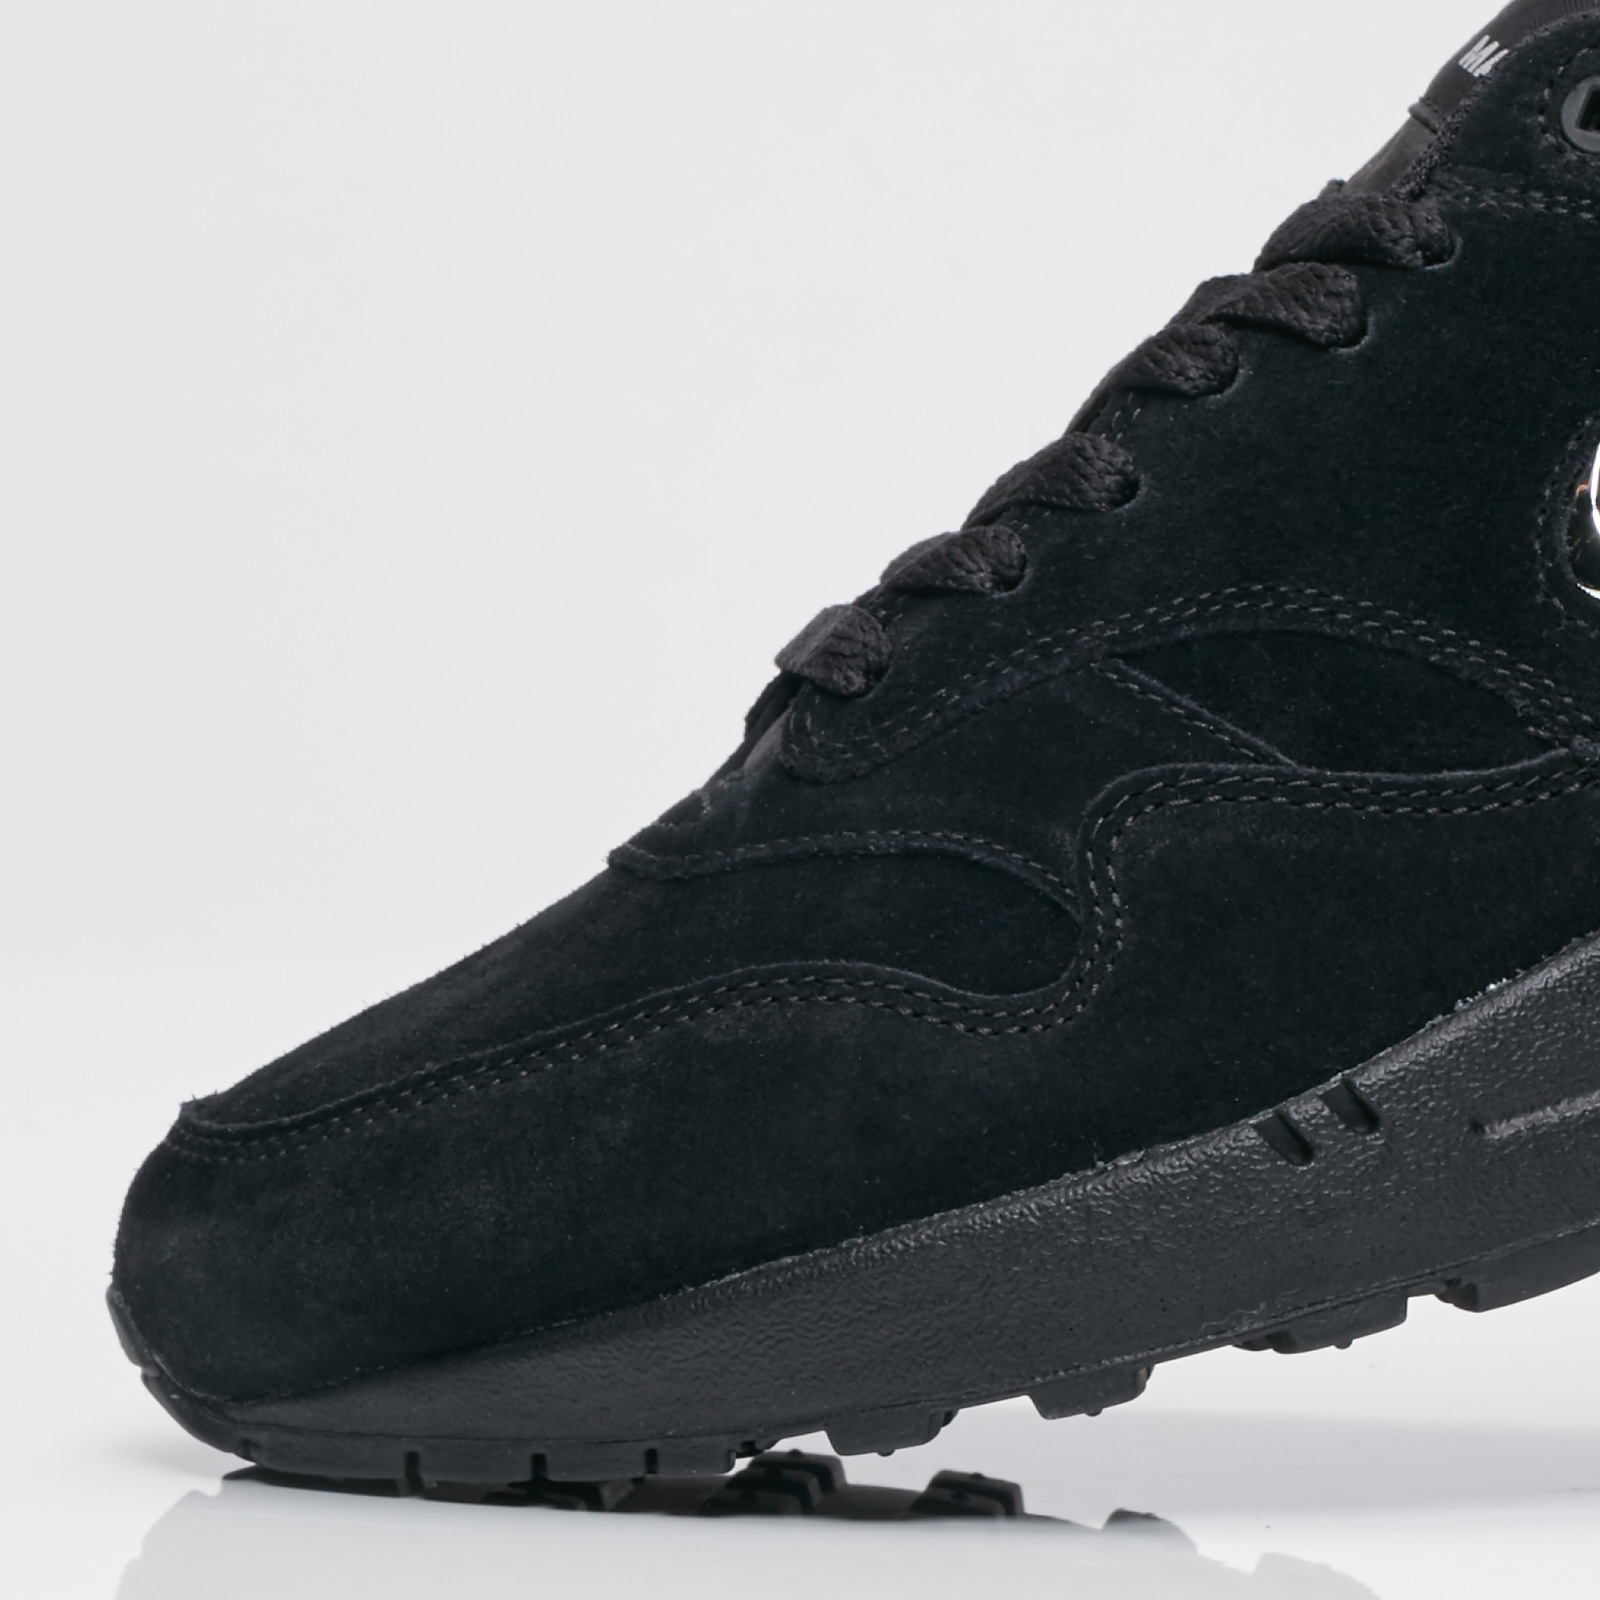 competitive price 48748 1414a Nike Air Max 1 Premium SC - 918354-005 - Sneakersnstuff   sneakers    streetwear online since 1999